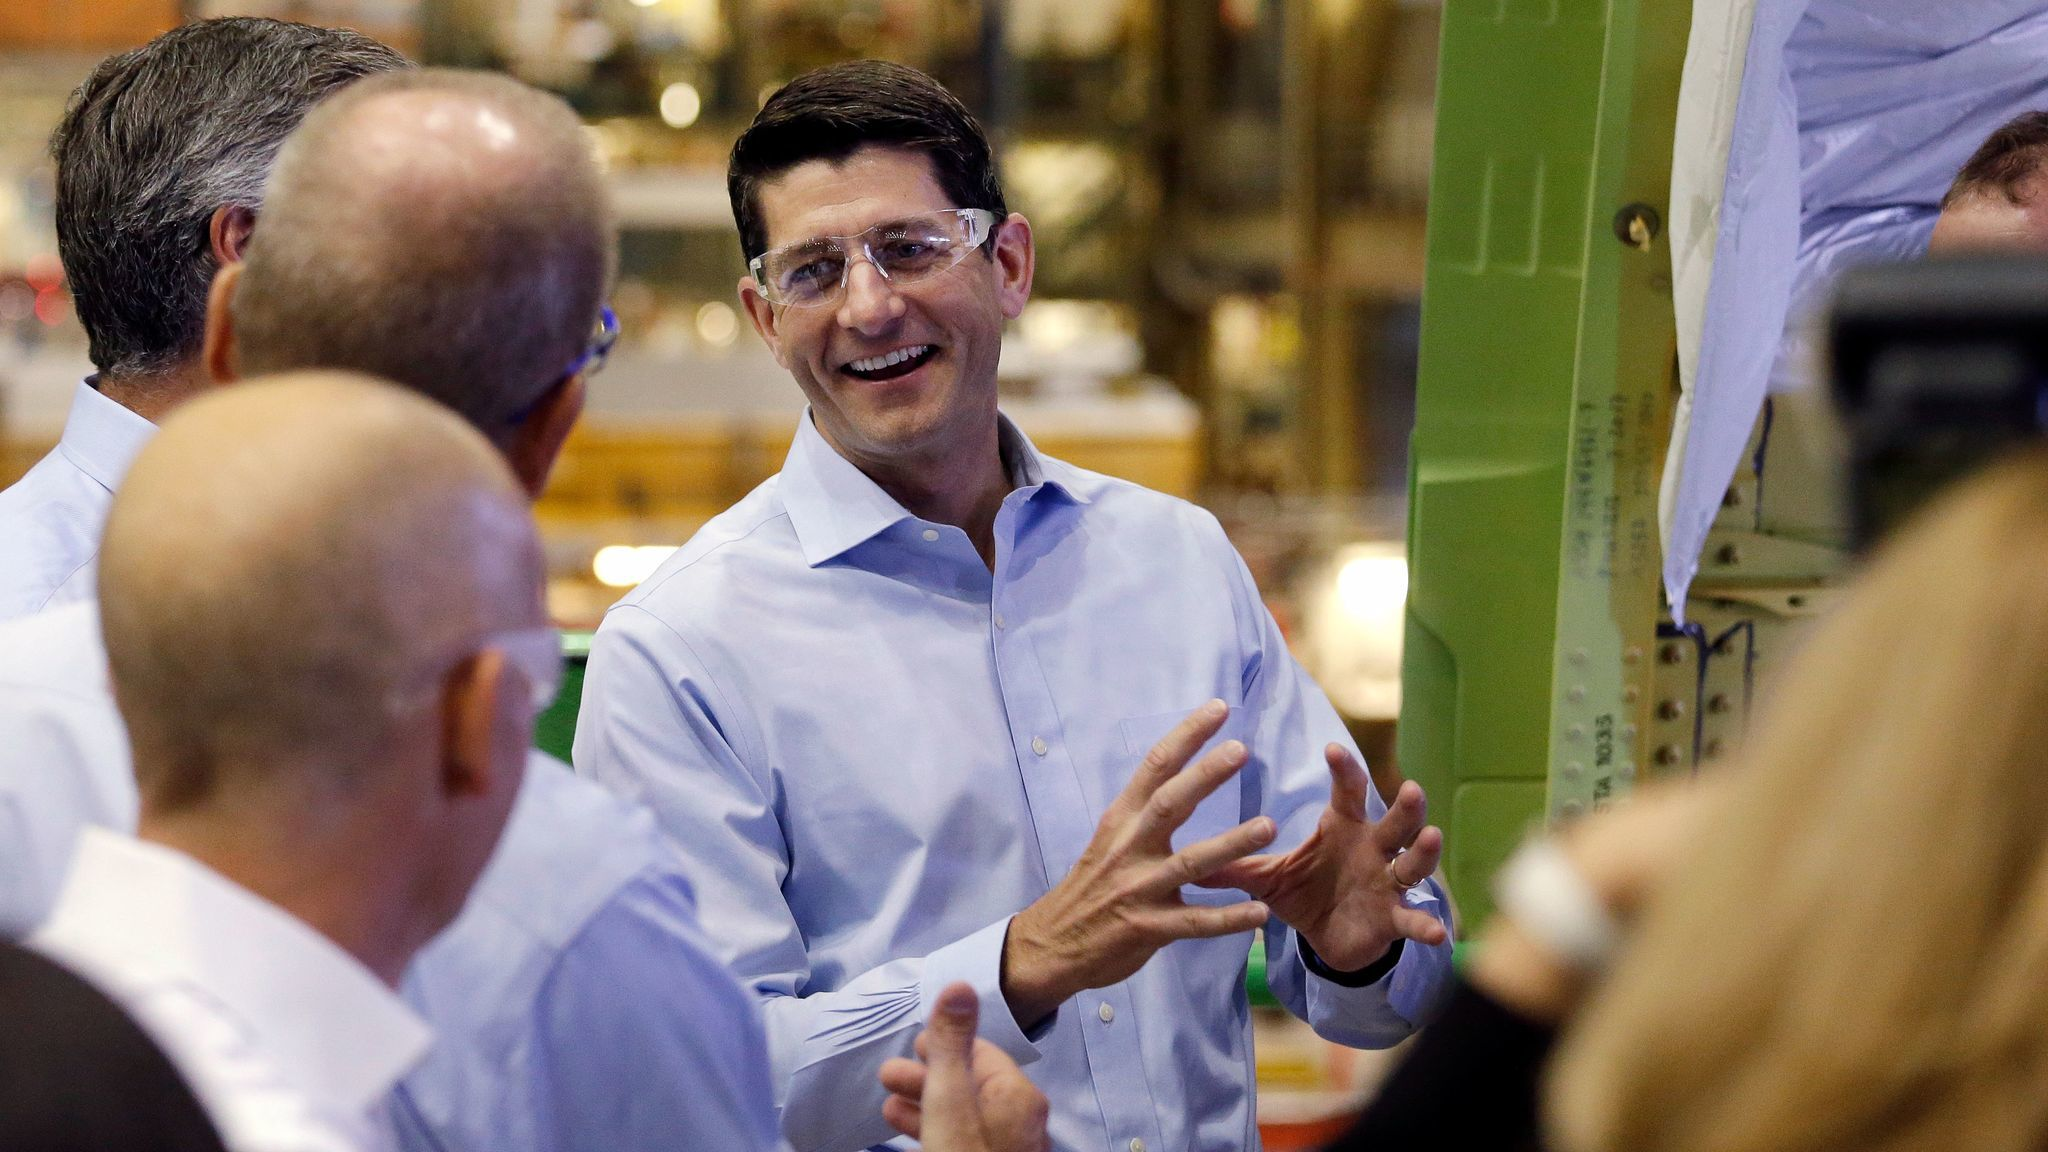 House Speaker Paul D. Ryan (R-Wis.) talks with Boeing Co. employees while on a tour of the airplane factory in Everett, Wash., in August.